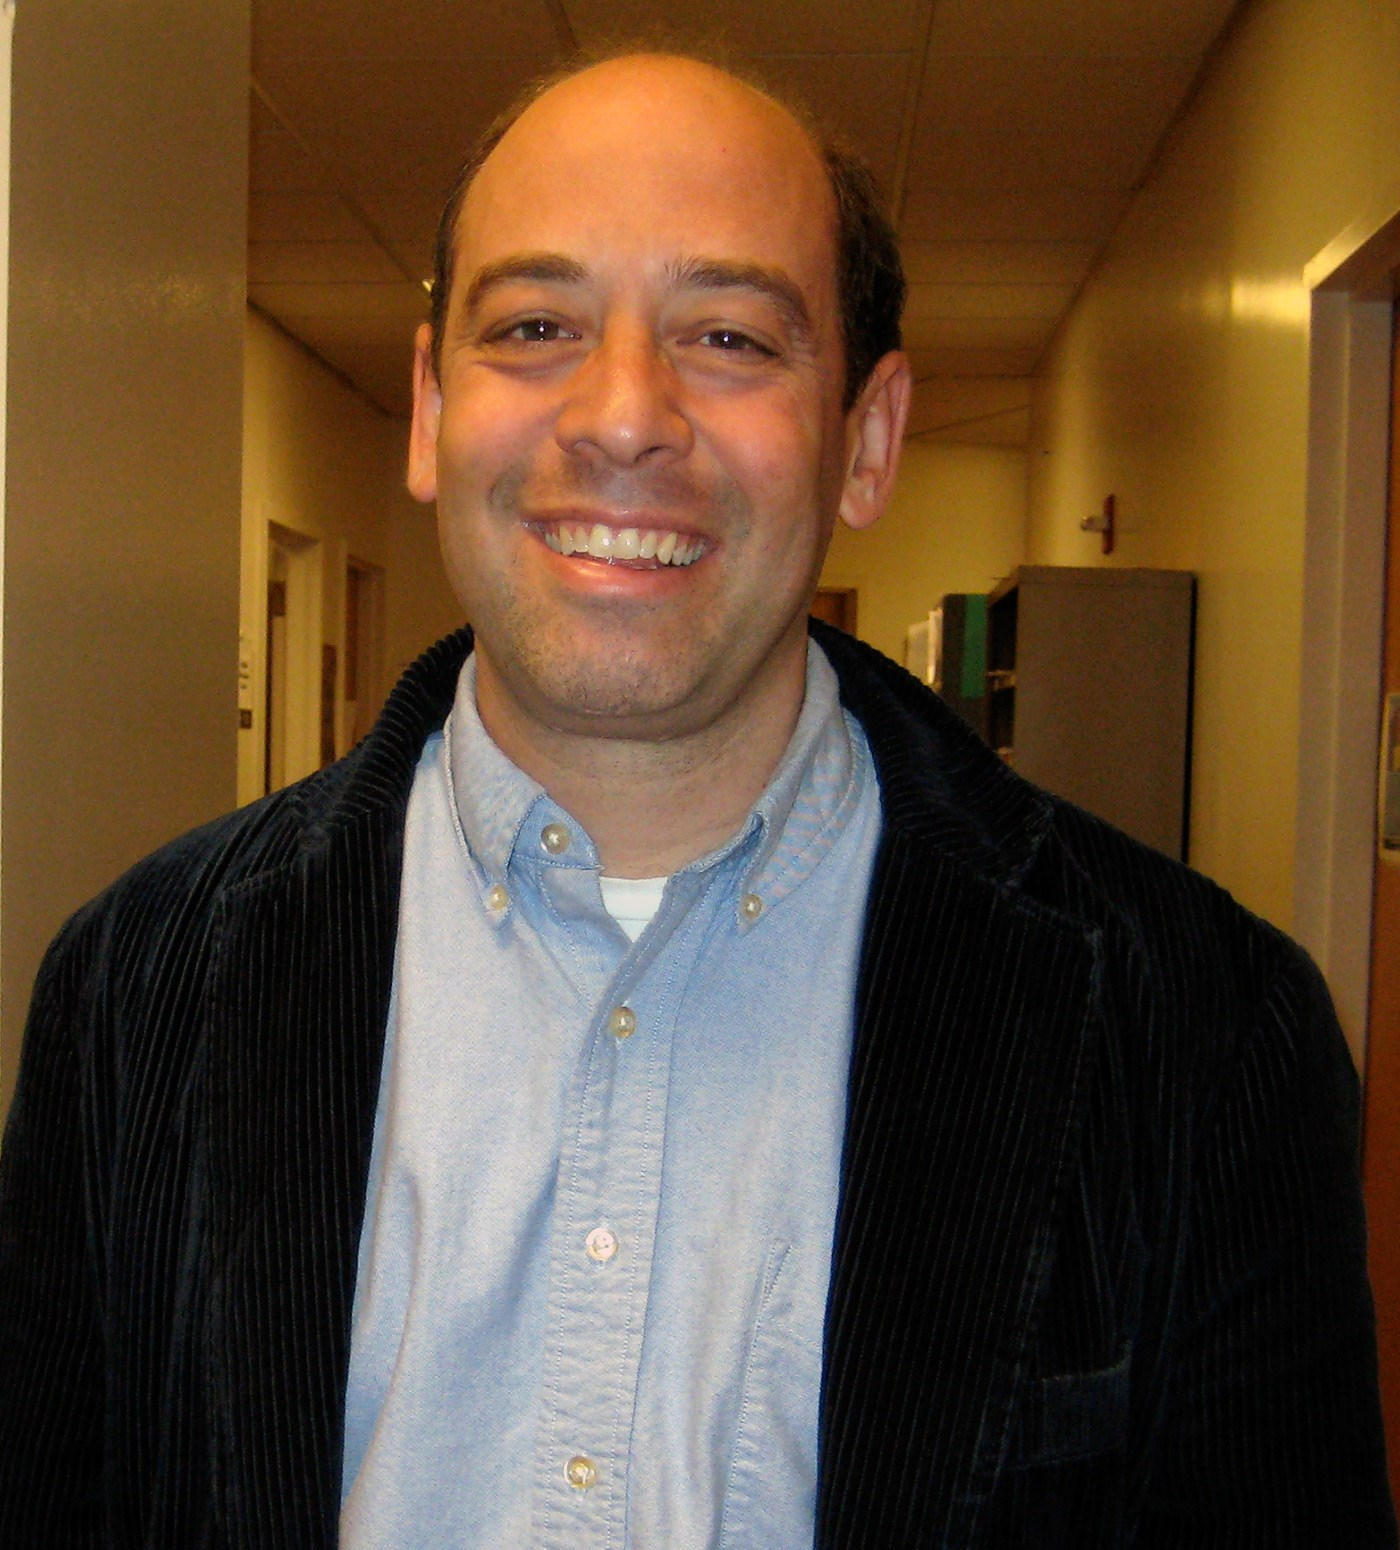 Jonathan Silverman, Associate Professor of English, Co-Director of American Studies at UMass Lowell.